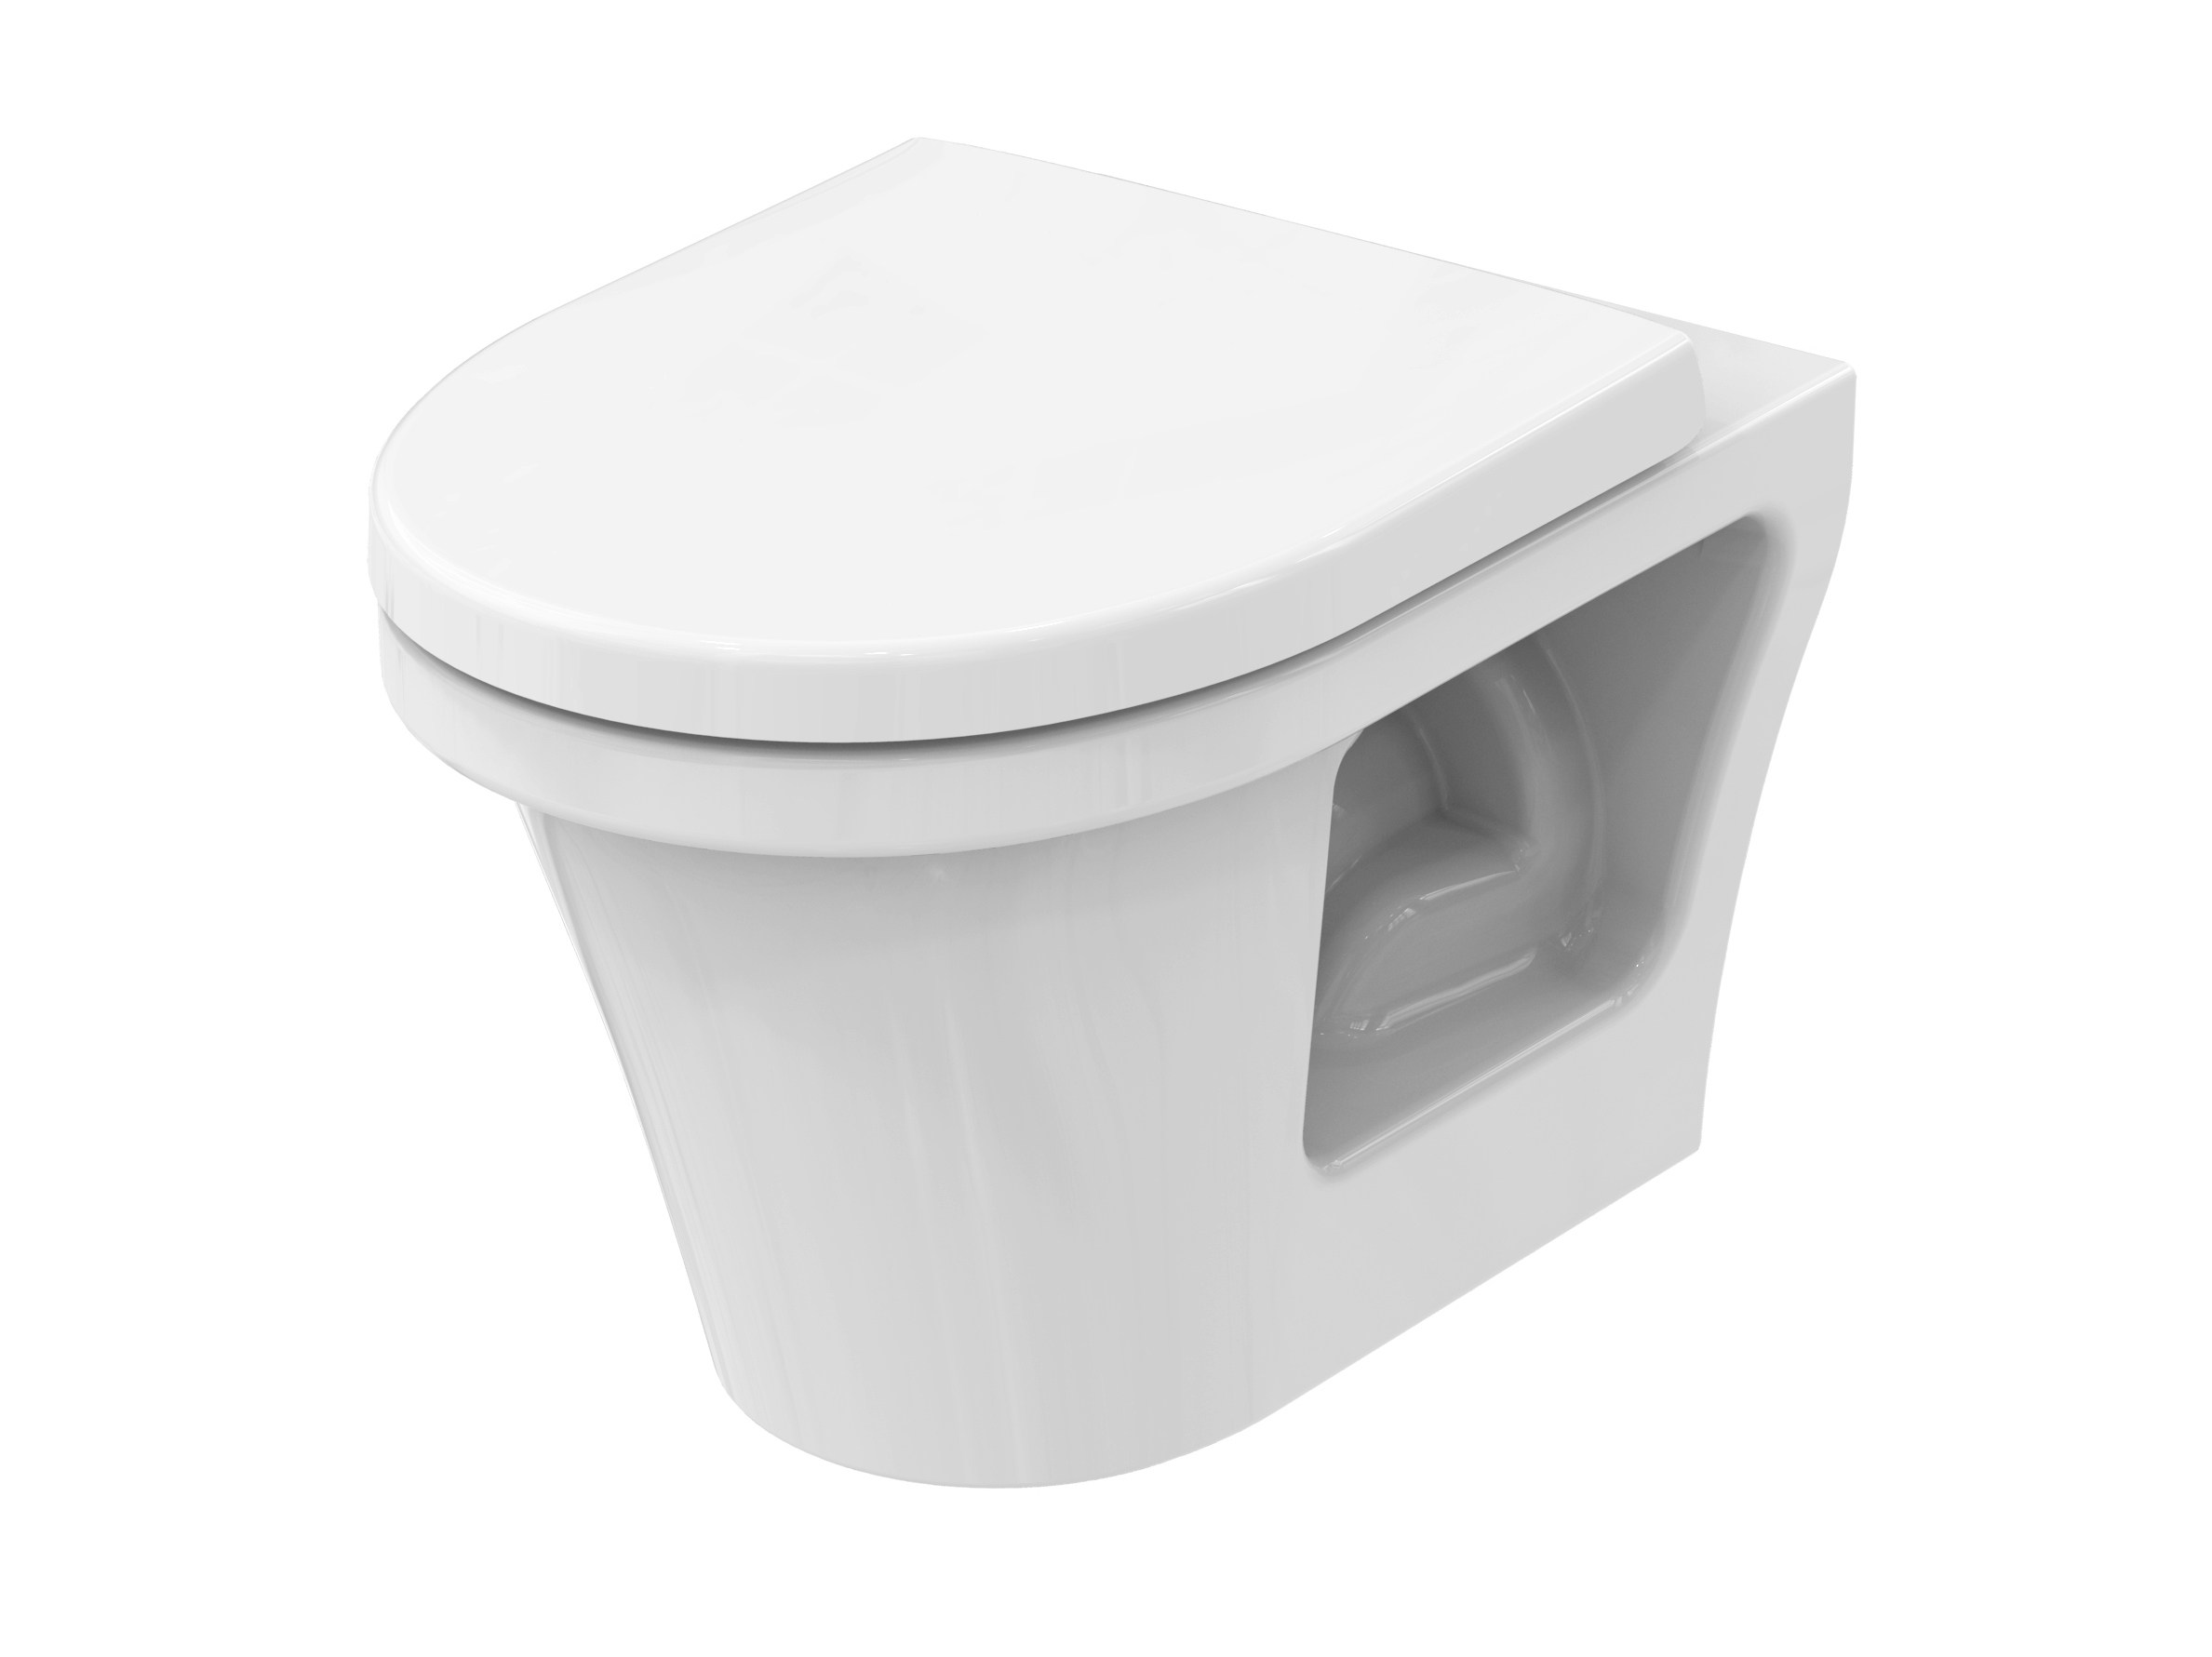 Bath & Shower Toto Toilet Toto Back Outlet Toilet